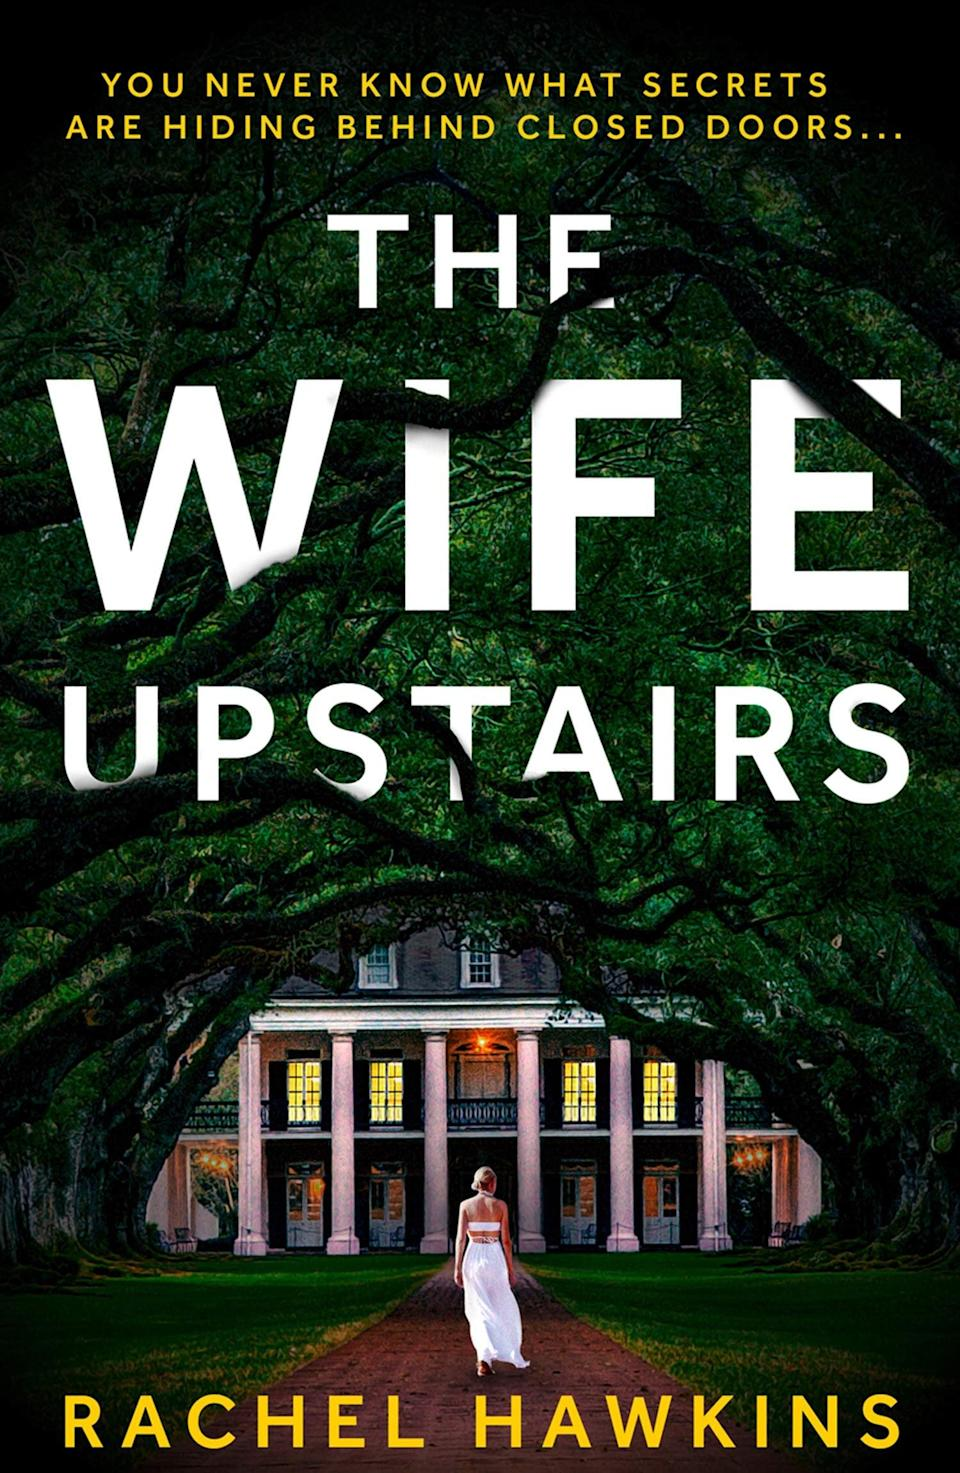 <p><strong>Jane Eyre</strong> gets a Southern gothic twist in <span><strong>The Wife Upstairs</strong></span> by Rachel Hawkins. This modern-day Jane is a dog walker looking for a way to escape her money troubles by marrying the wealthy Eddie Rochester. The only trouble is, Jane can't help but feel haunted by Eddie's supposedly dead ex-wife. </p> <p><em>Out April 1</em></p>